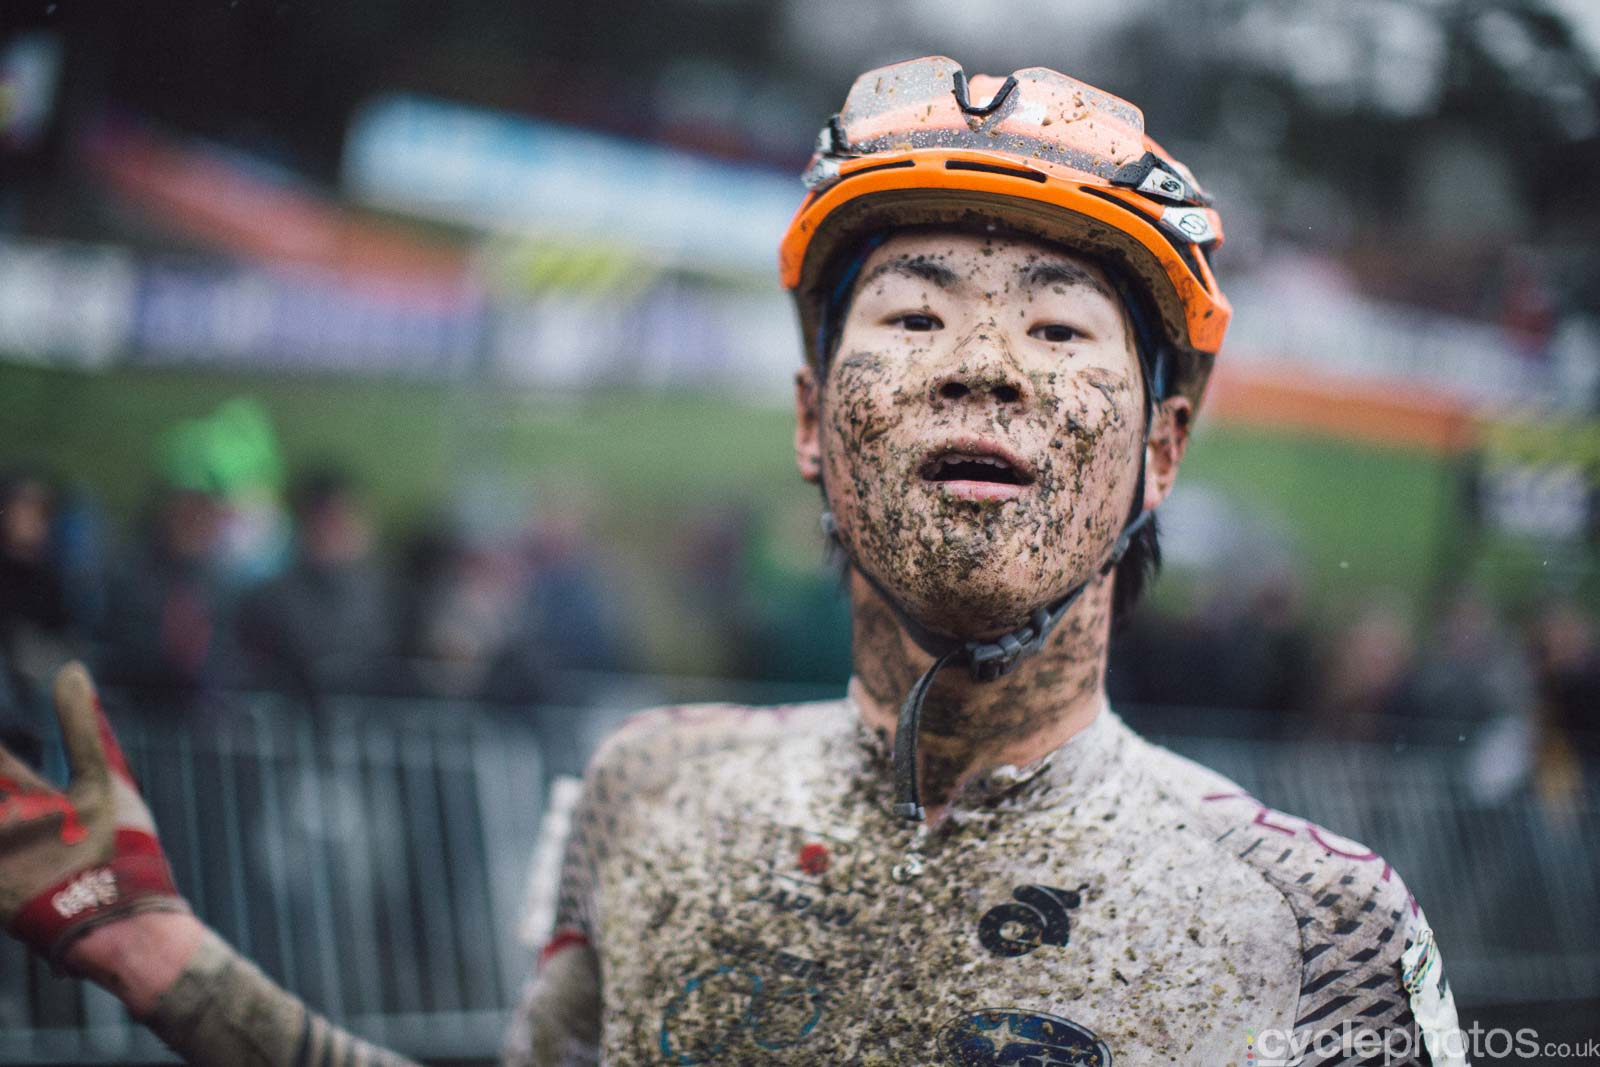 2016-cyclephotos-cyclocross-world-championships-zolder-115026-hijiri-oda